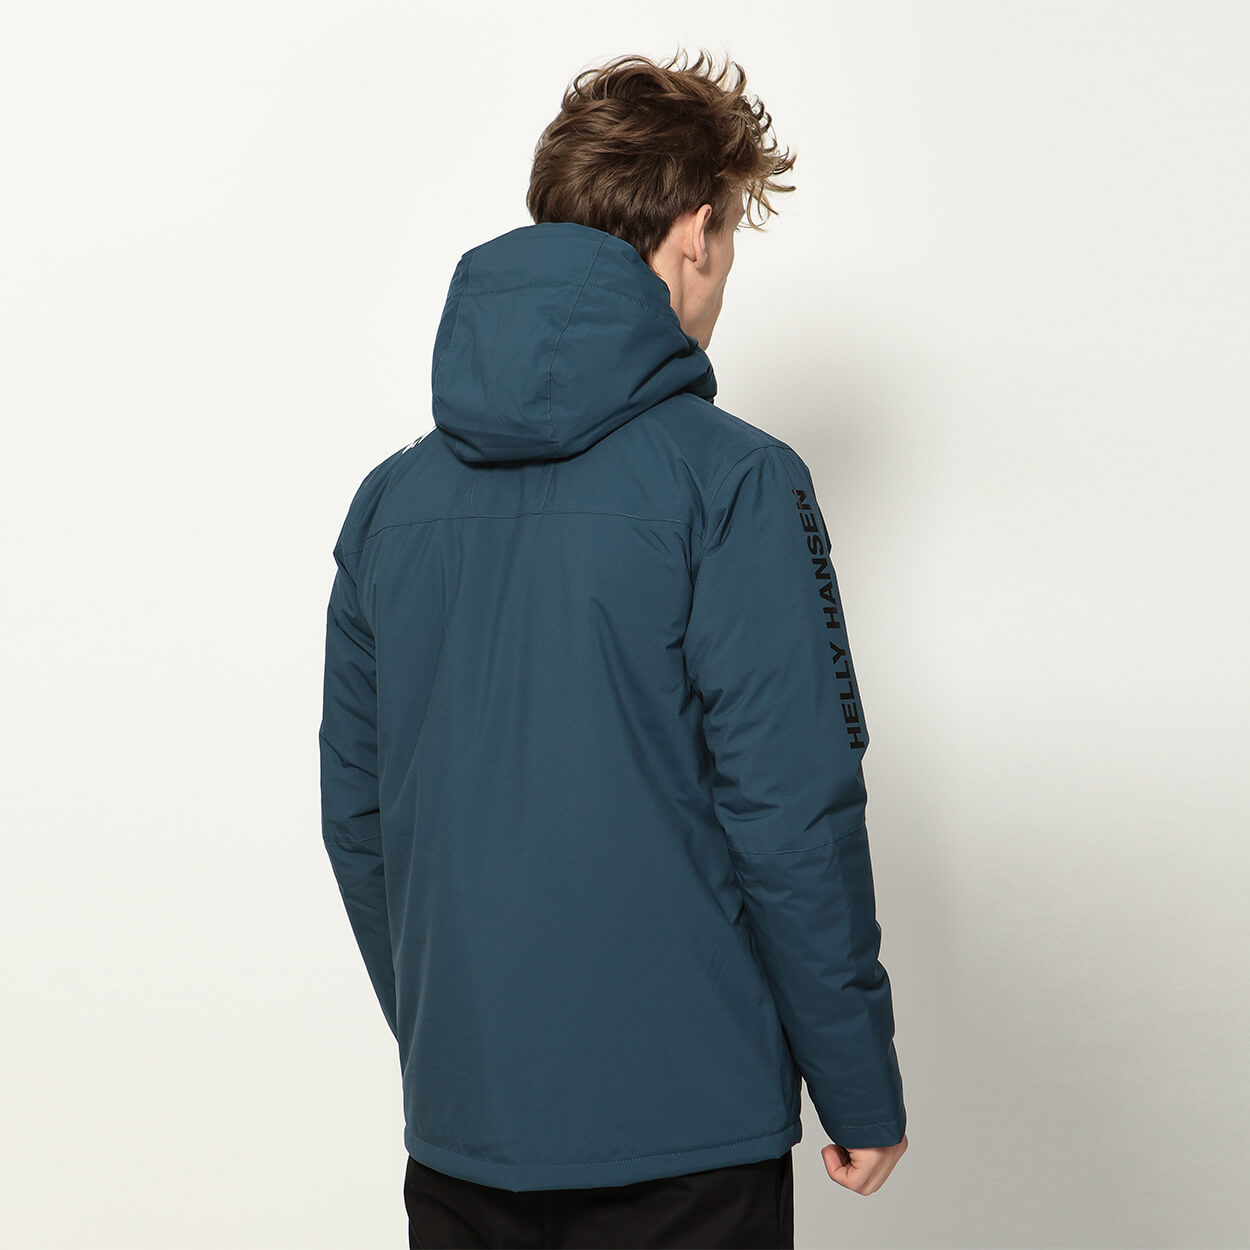 Мужская куртка Helly Hansen Shoreline (Dark Teal)